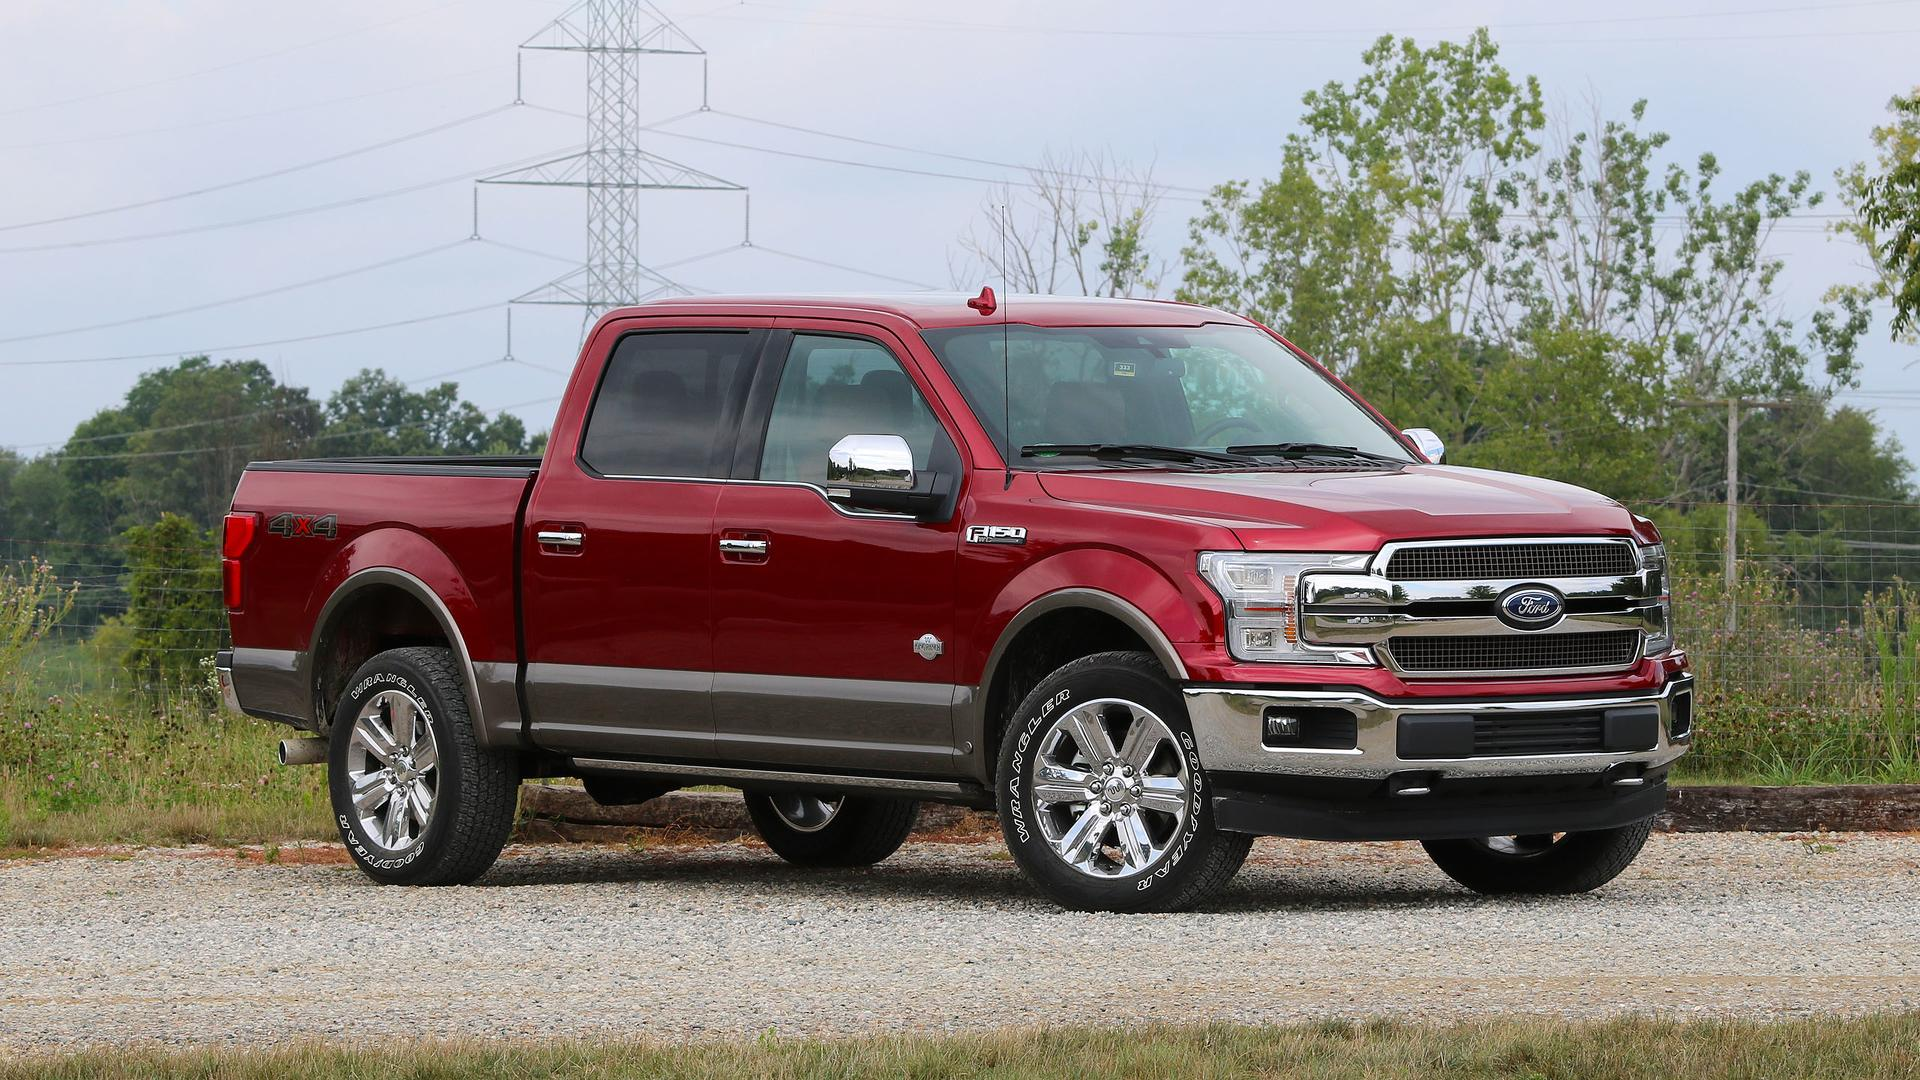 Velocity Auto Sales >> 2018 Ford F-150 First Drive: The Same, But Even Better